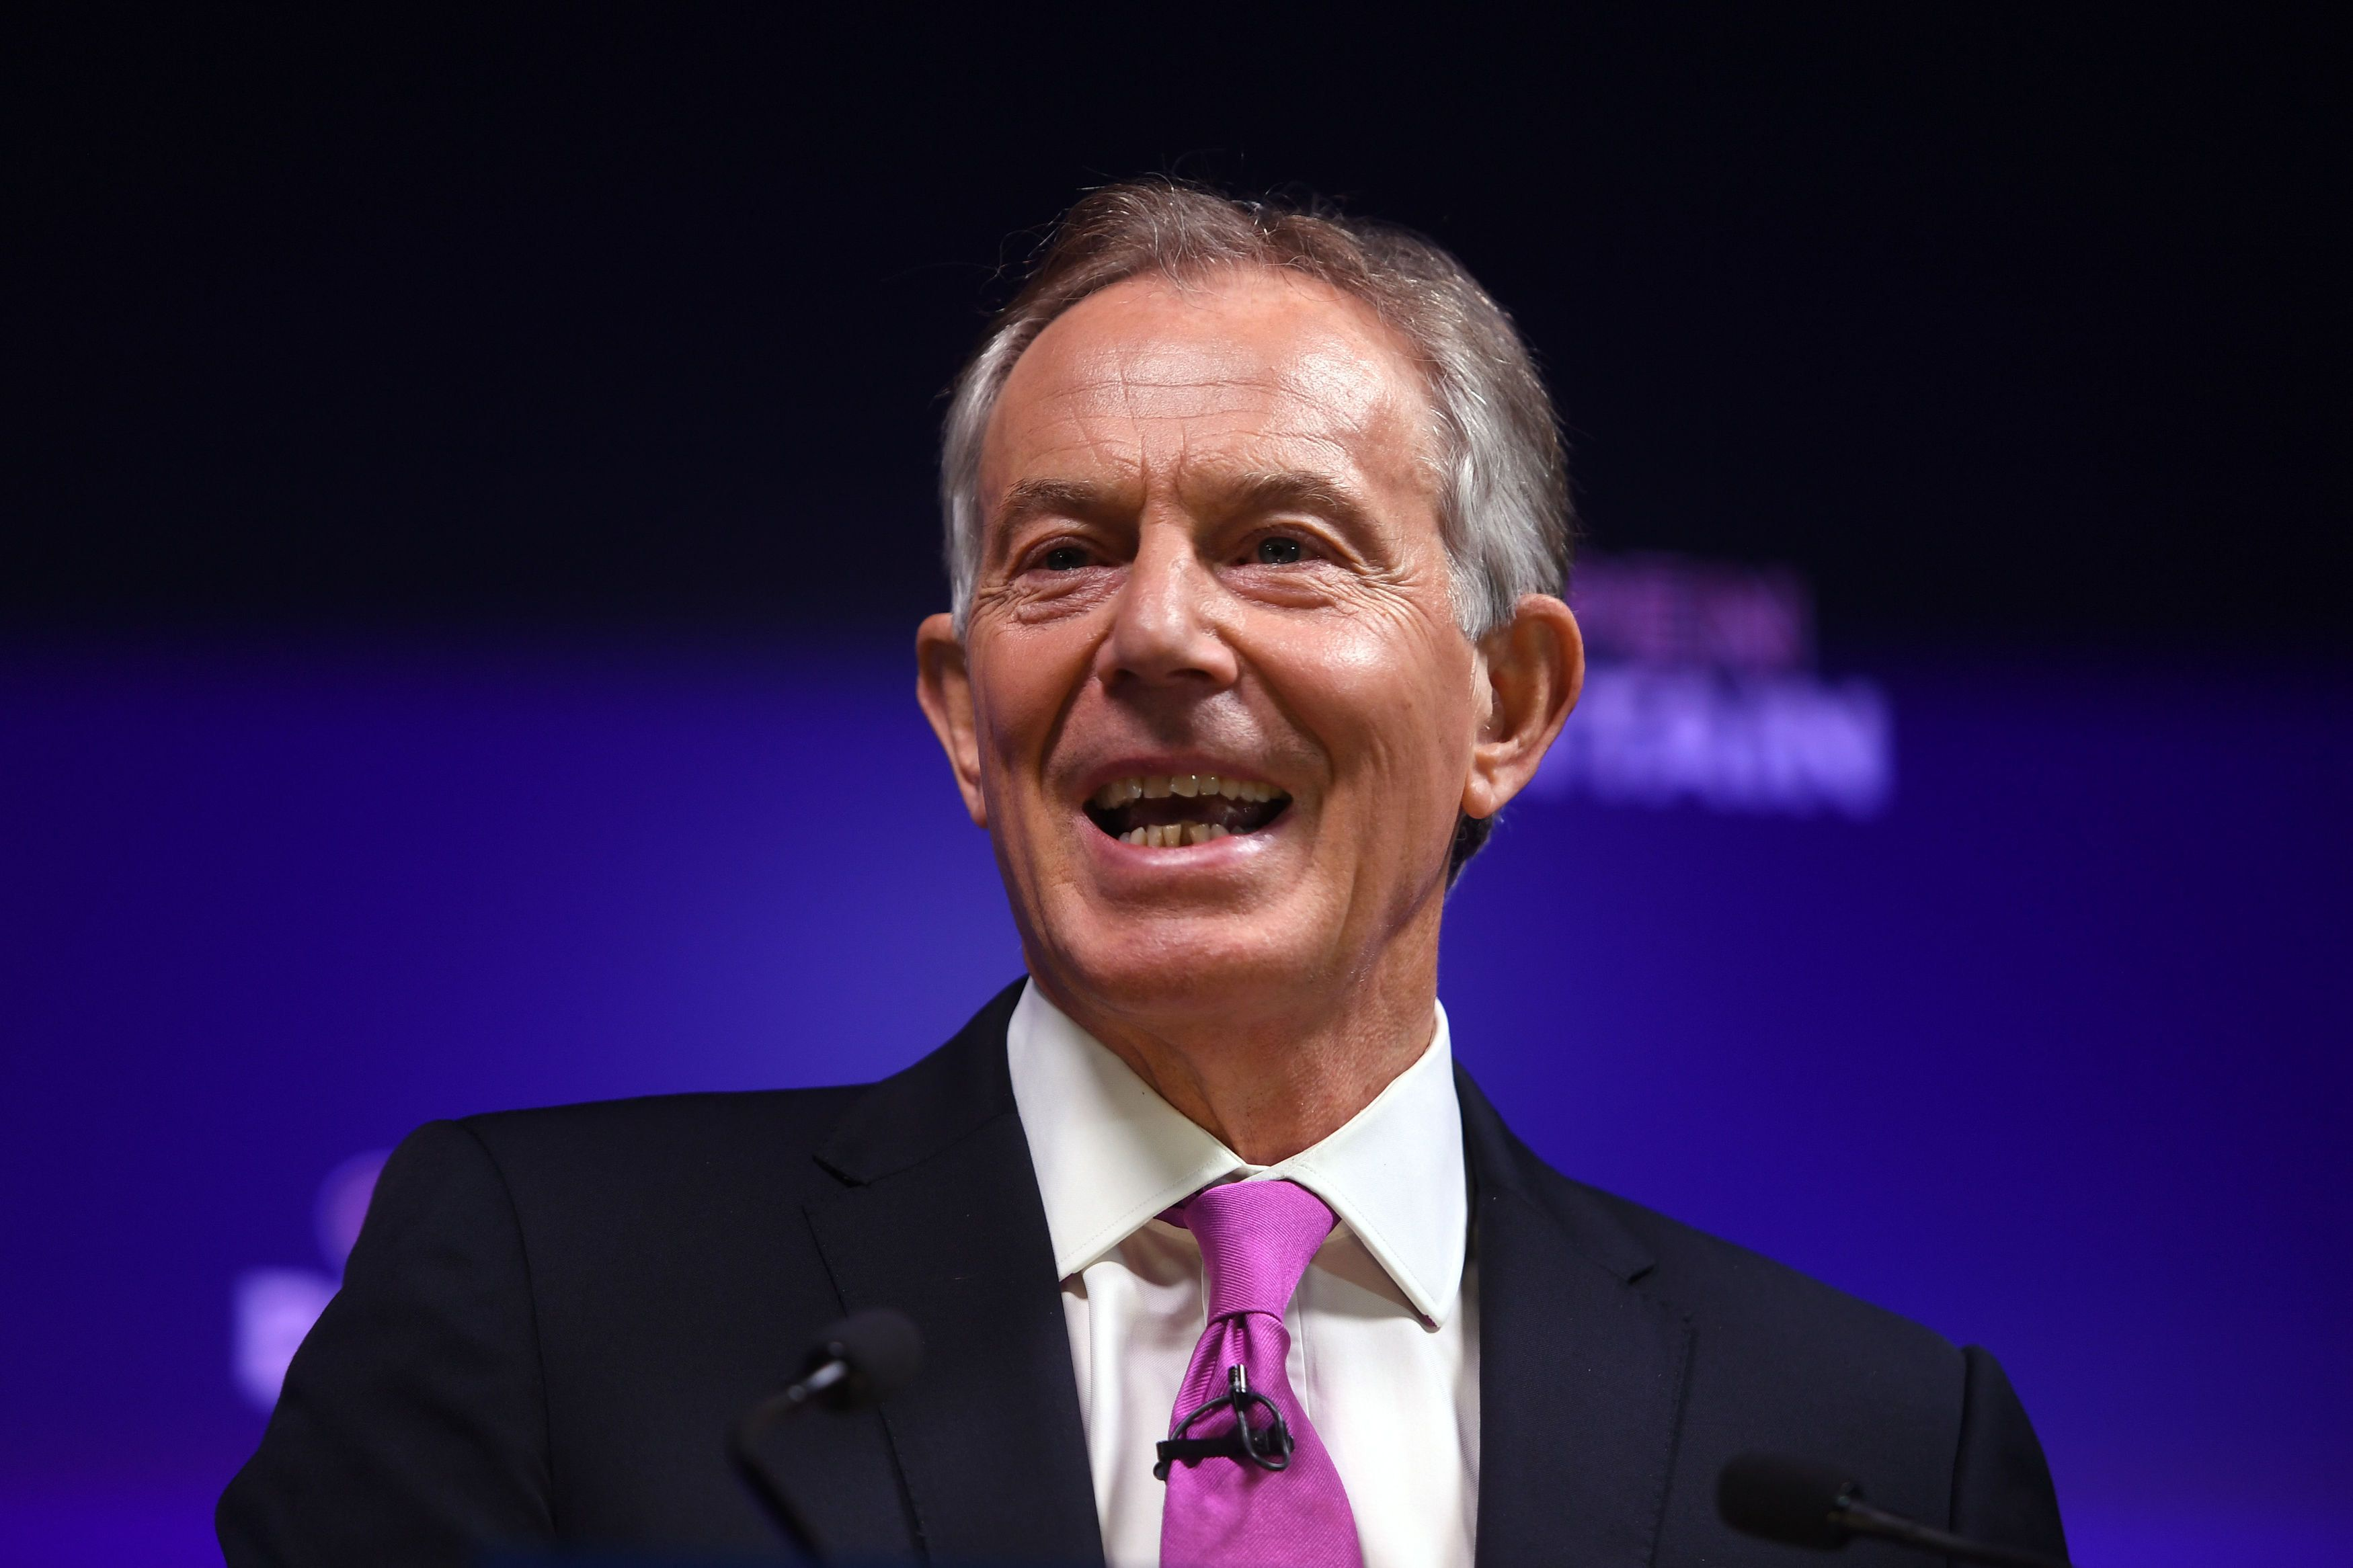 Britain Lacking 'No-Brainer' Political Leader To Vote For Since Tony Blair, Focus Group